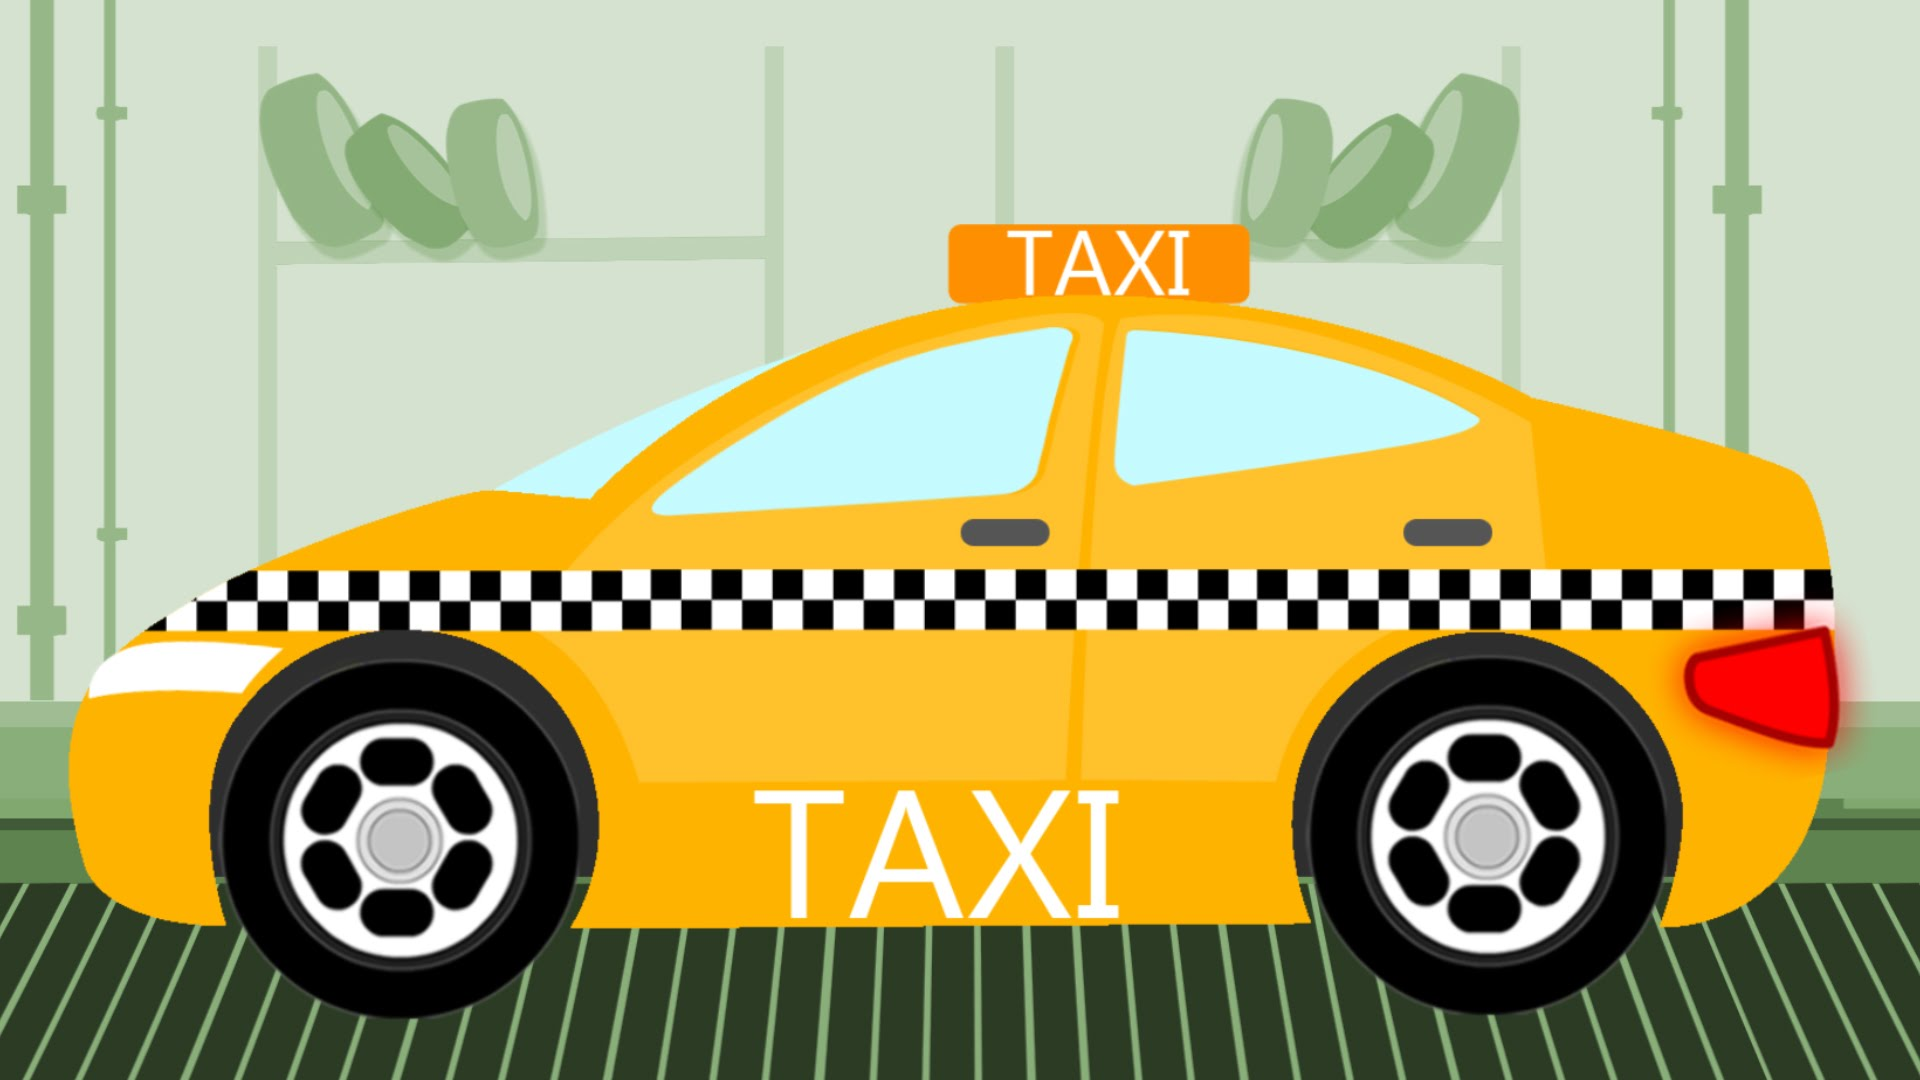 Toy clipart taxi #7